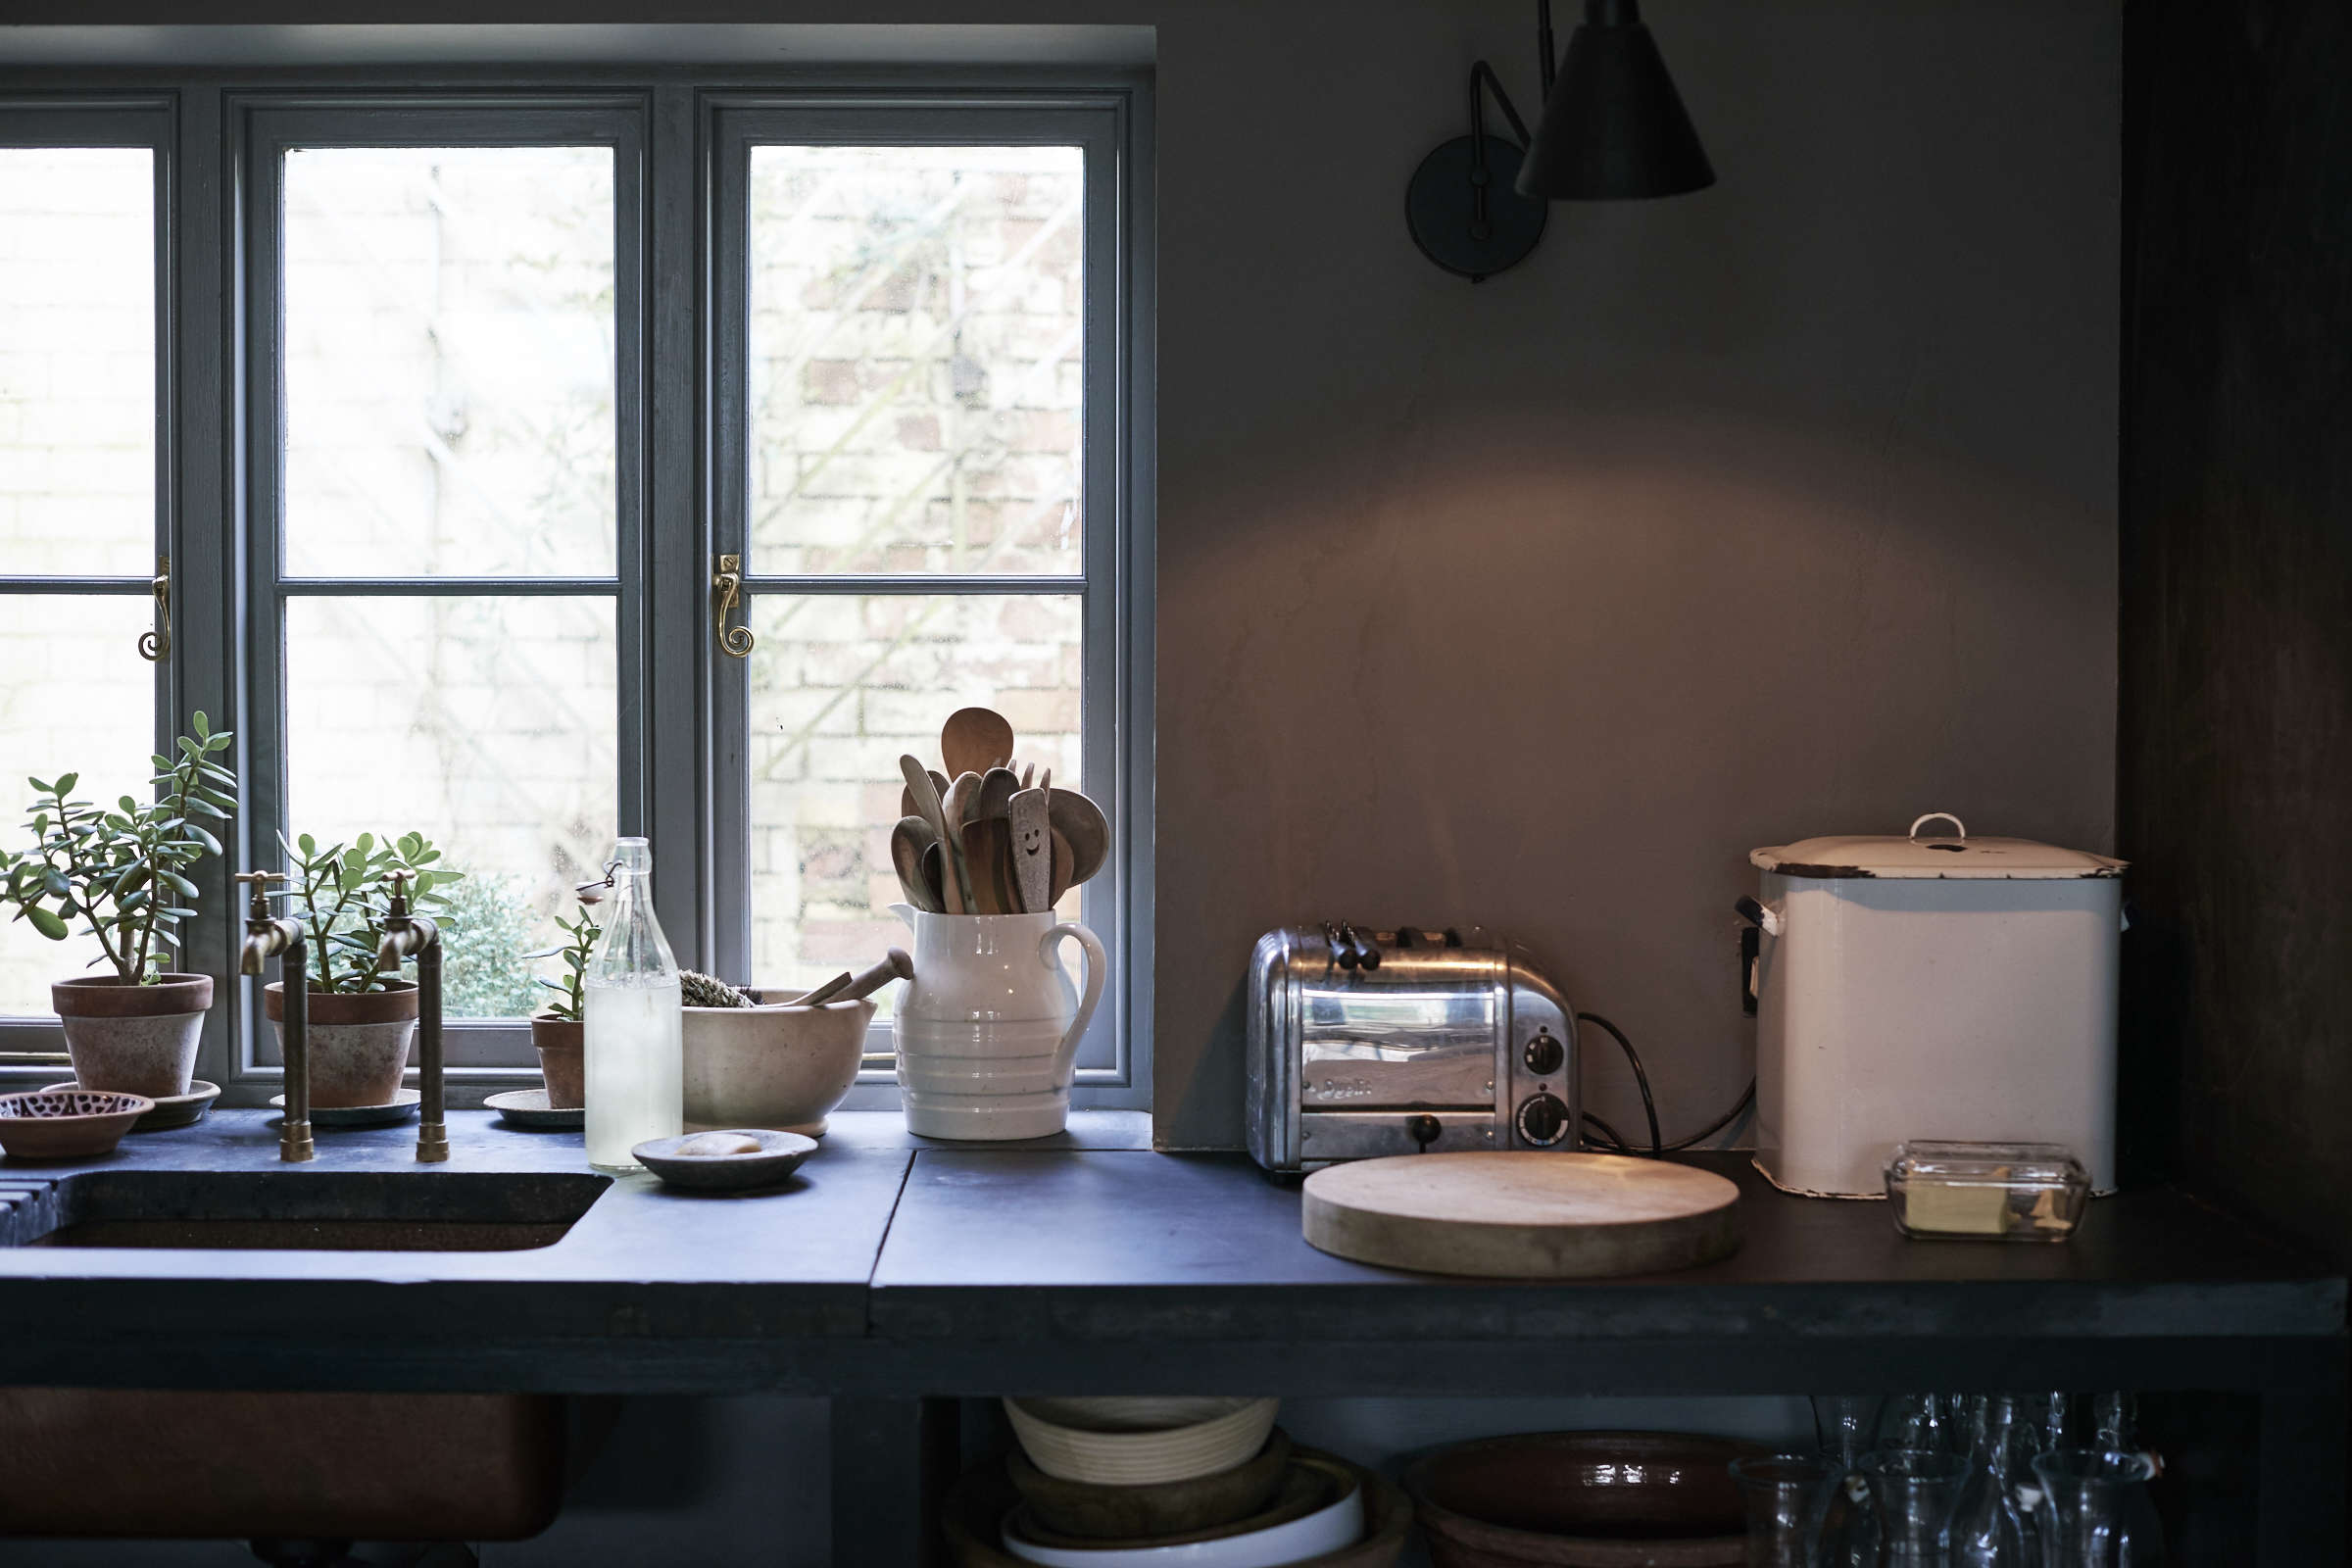 London theater designer Niki Turner's slate kitchen counters in a remodeled historic house in Gloucestershire | Remodelista